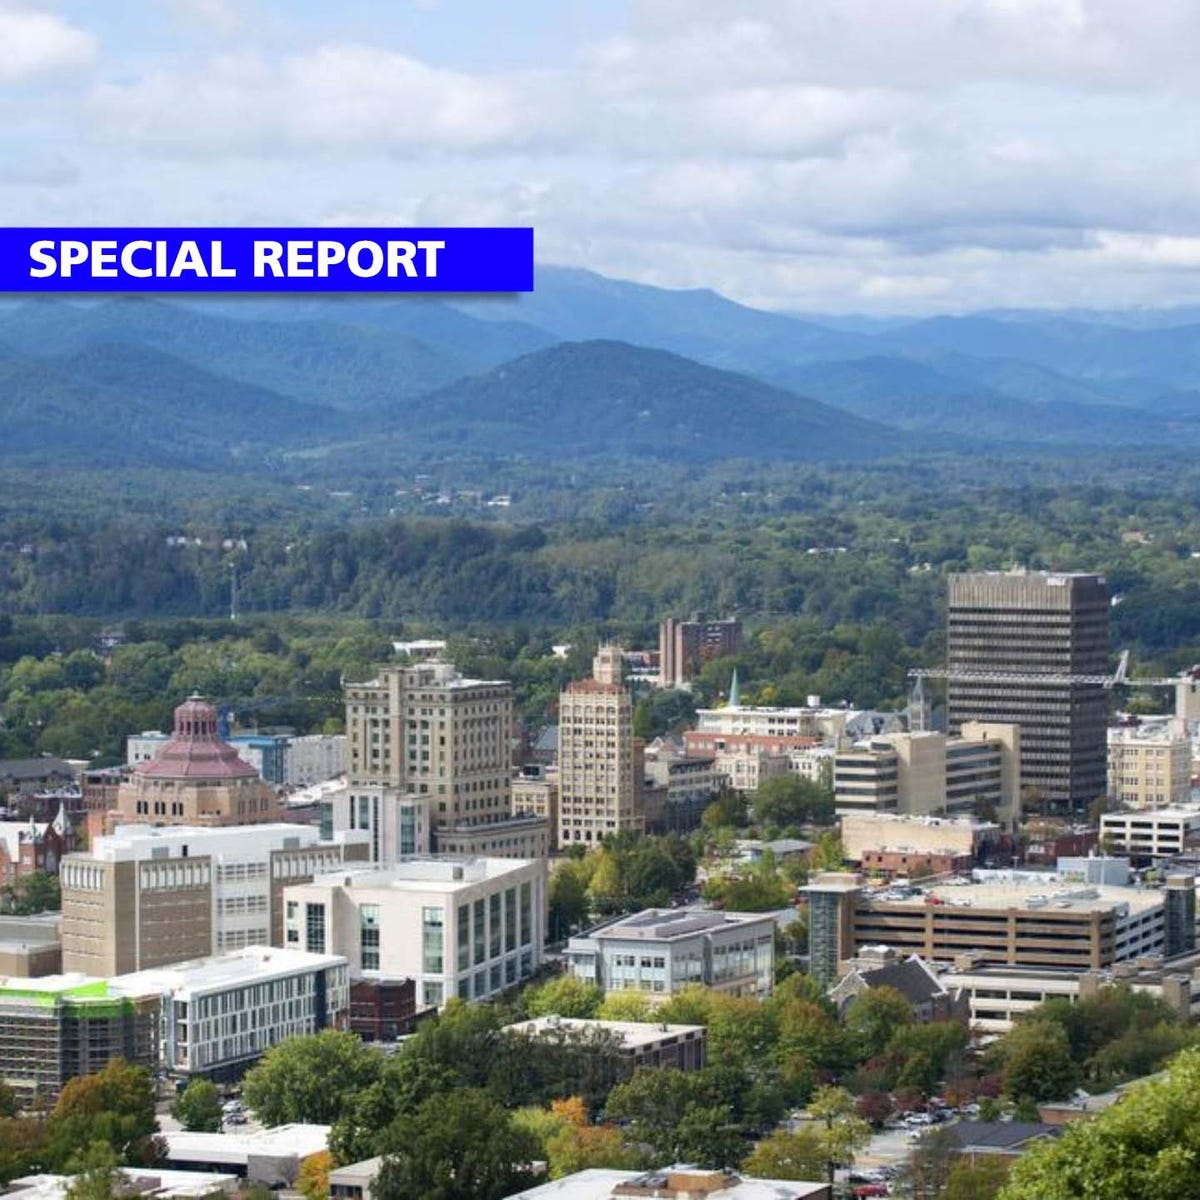 Asheville's path from hard times to breweries, hotels